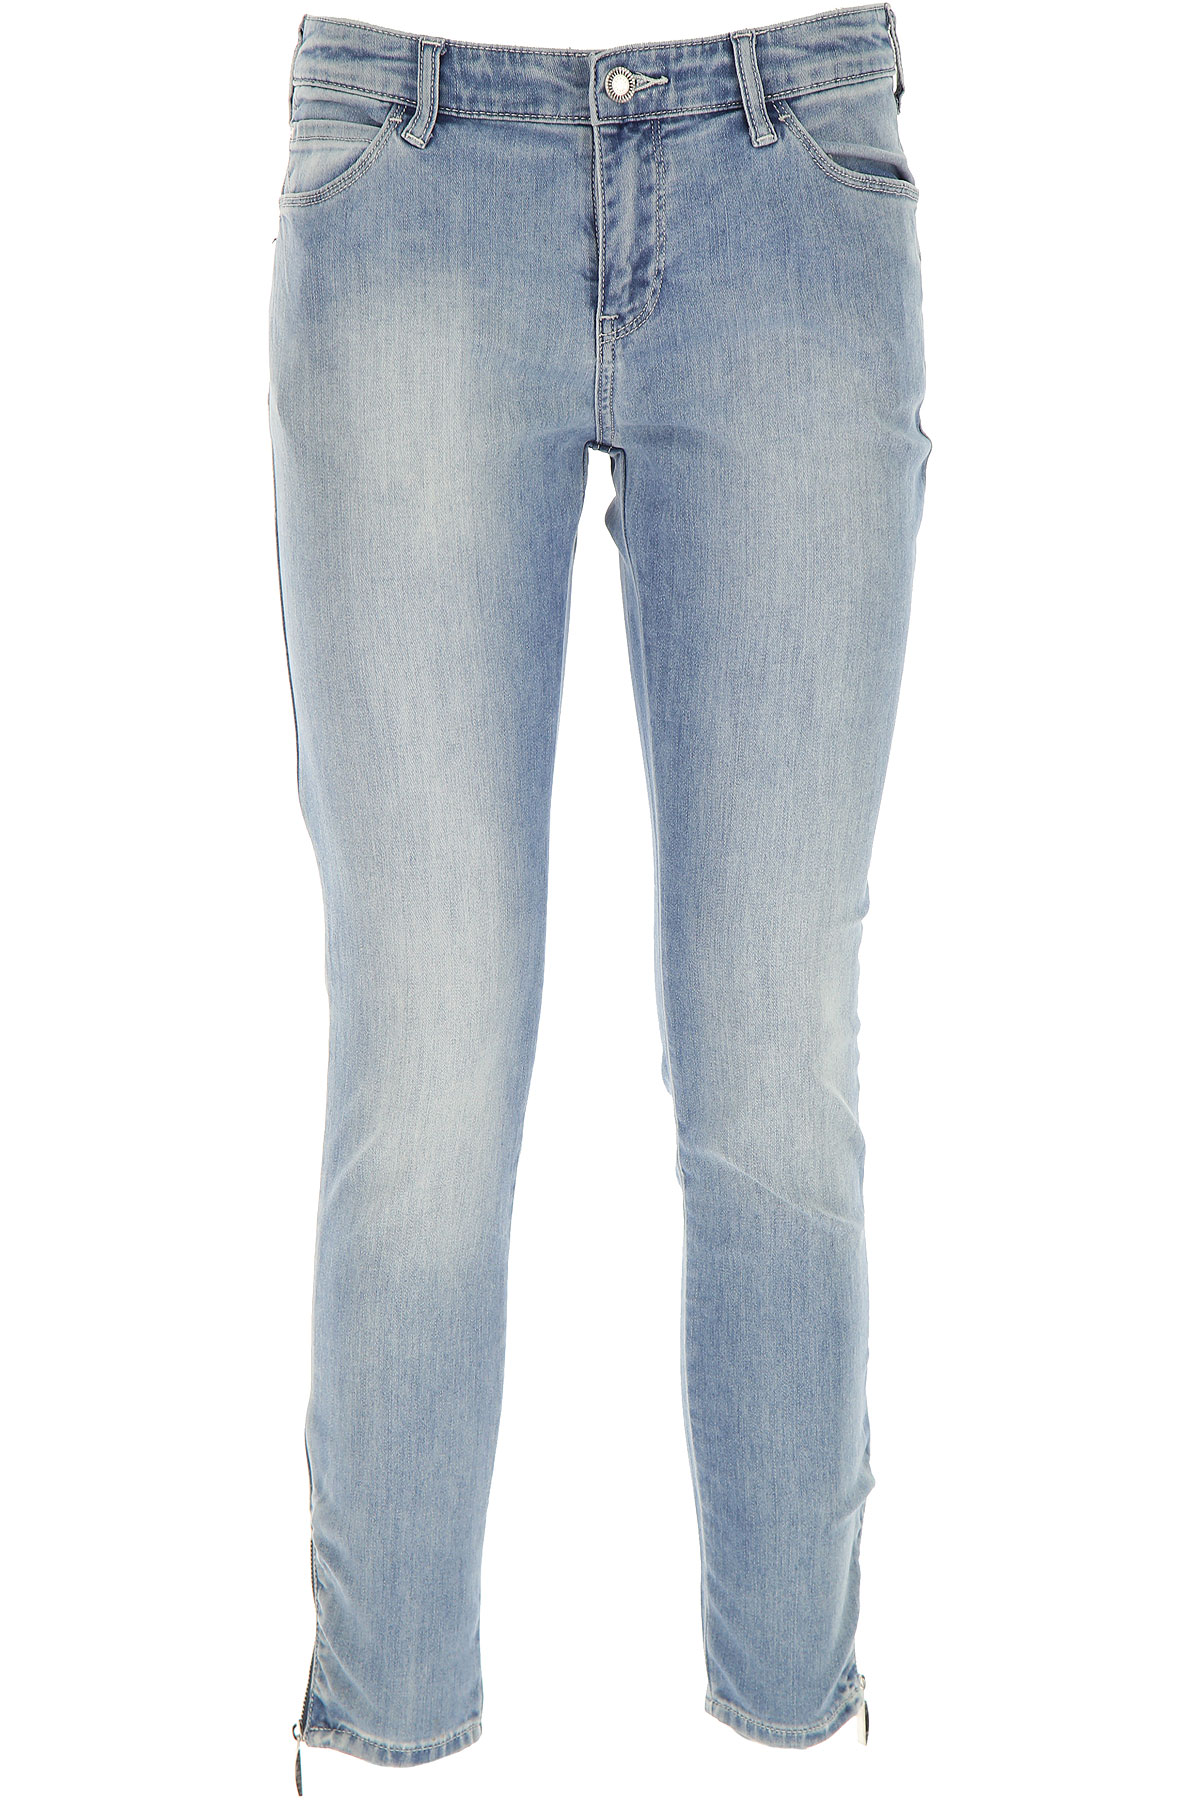 Giorgio Armani Jeans On Sale in Outlet, Light Blue Denim, Cotton, 2019, 27 30